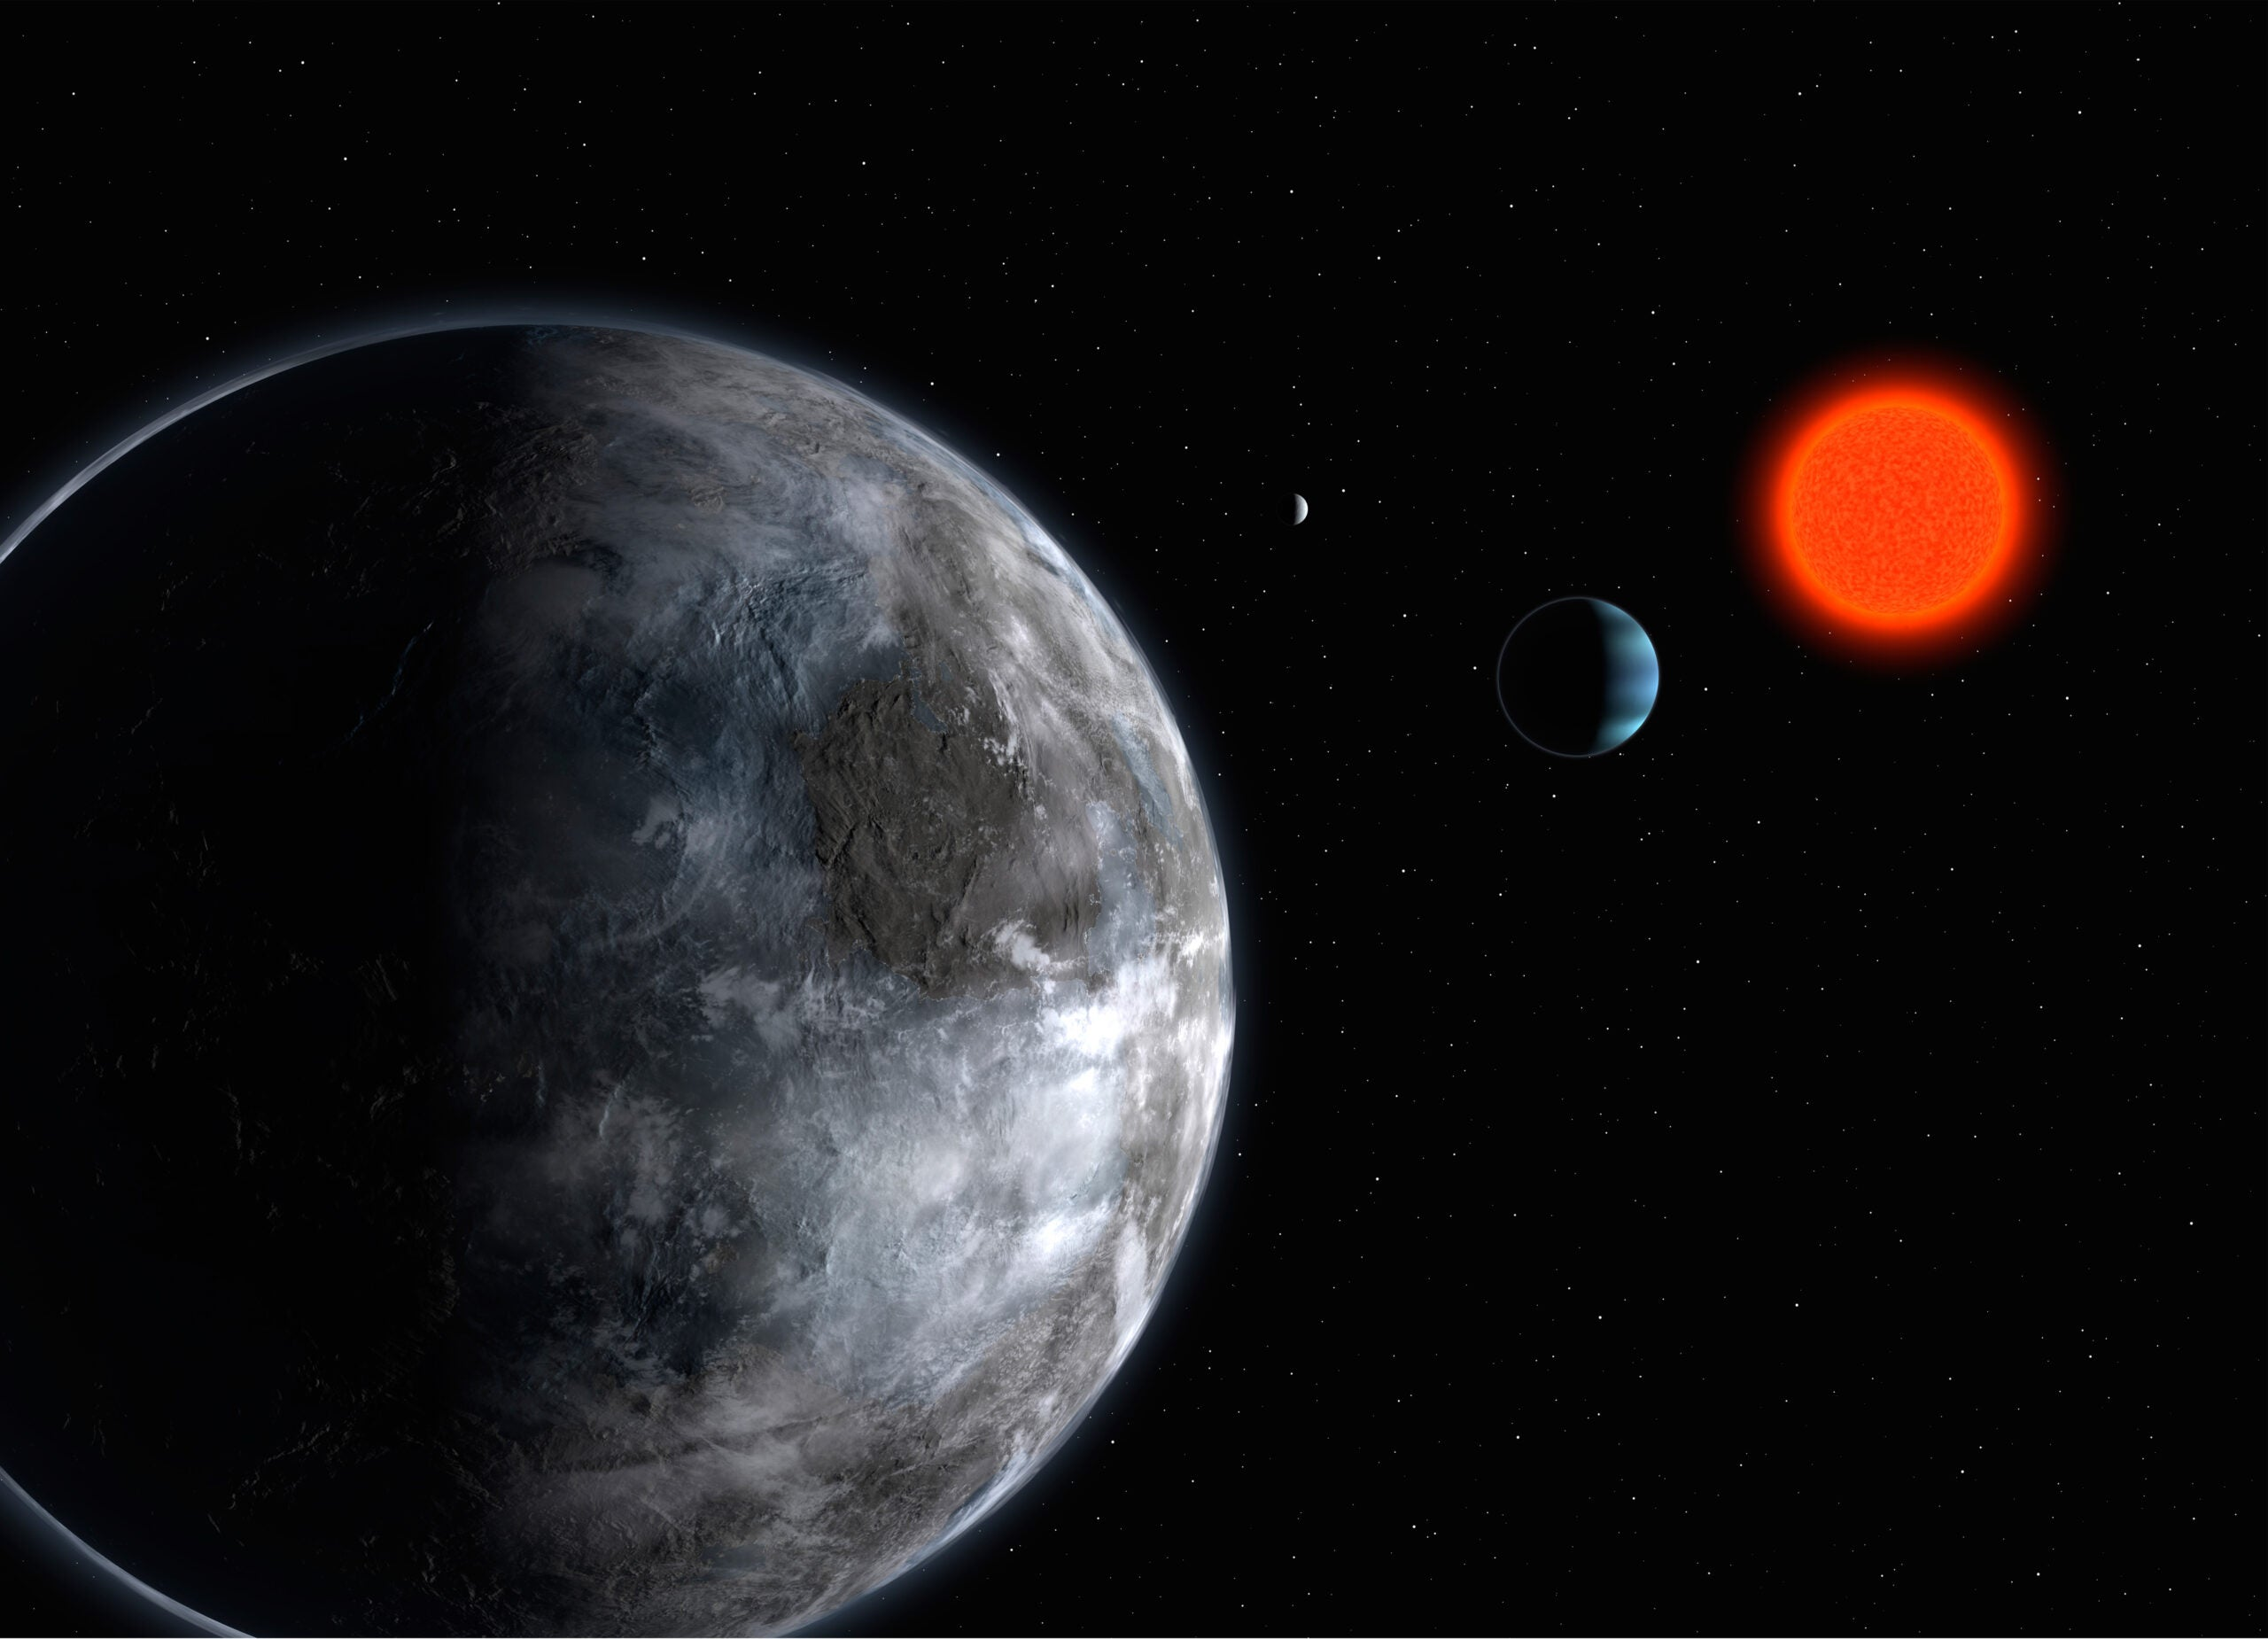 Soon, You'll Officially Be Able To Name An Exoplanet… Sort Of